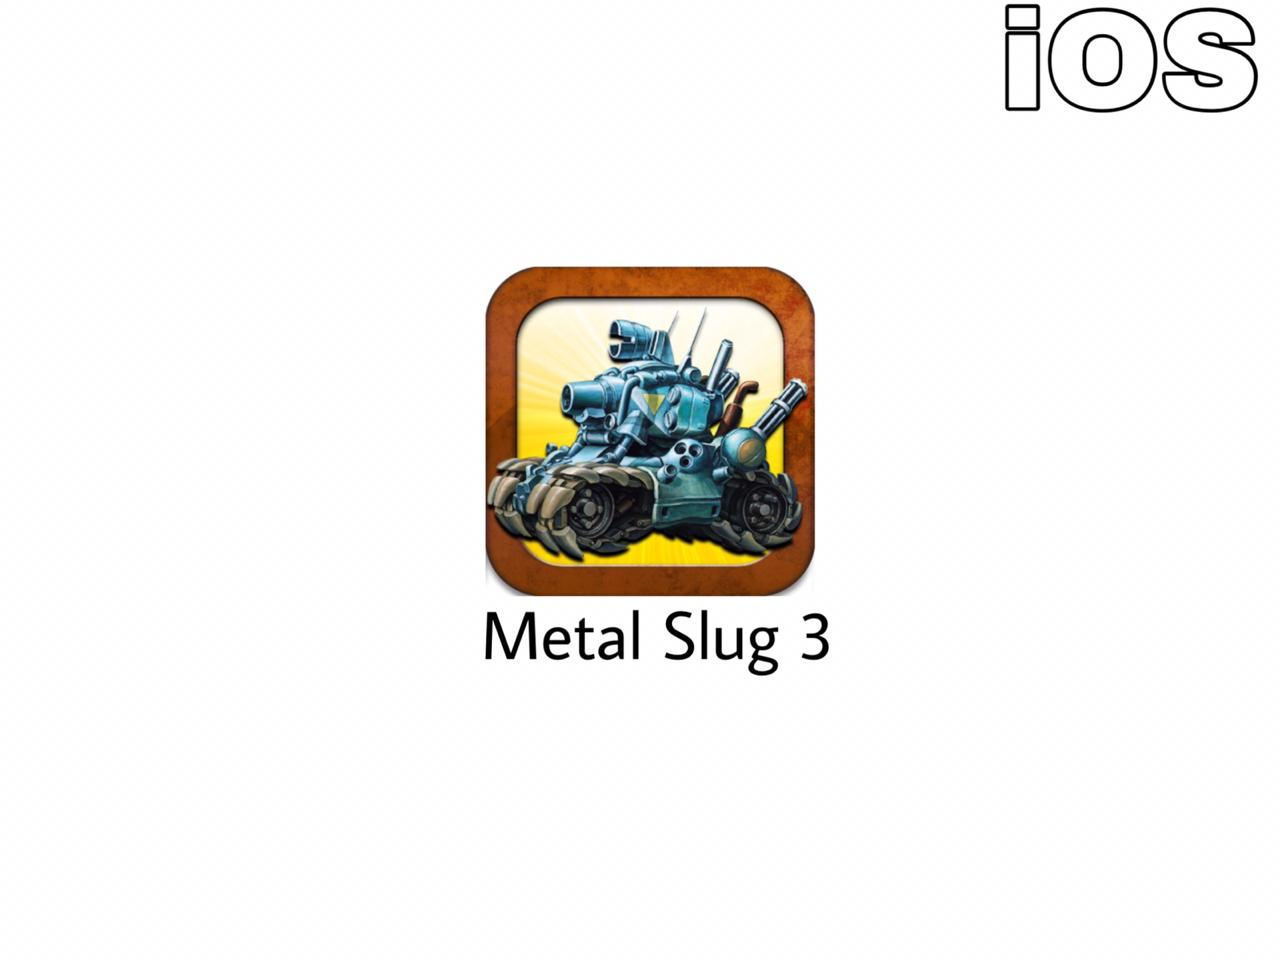 metal slug 3 free download ios